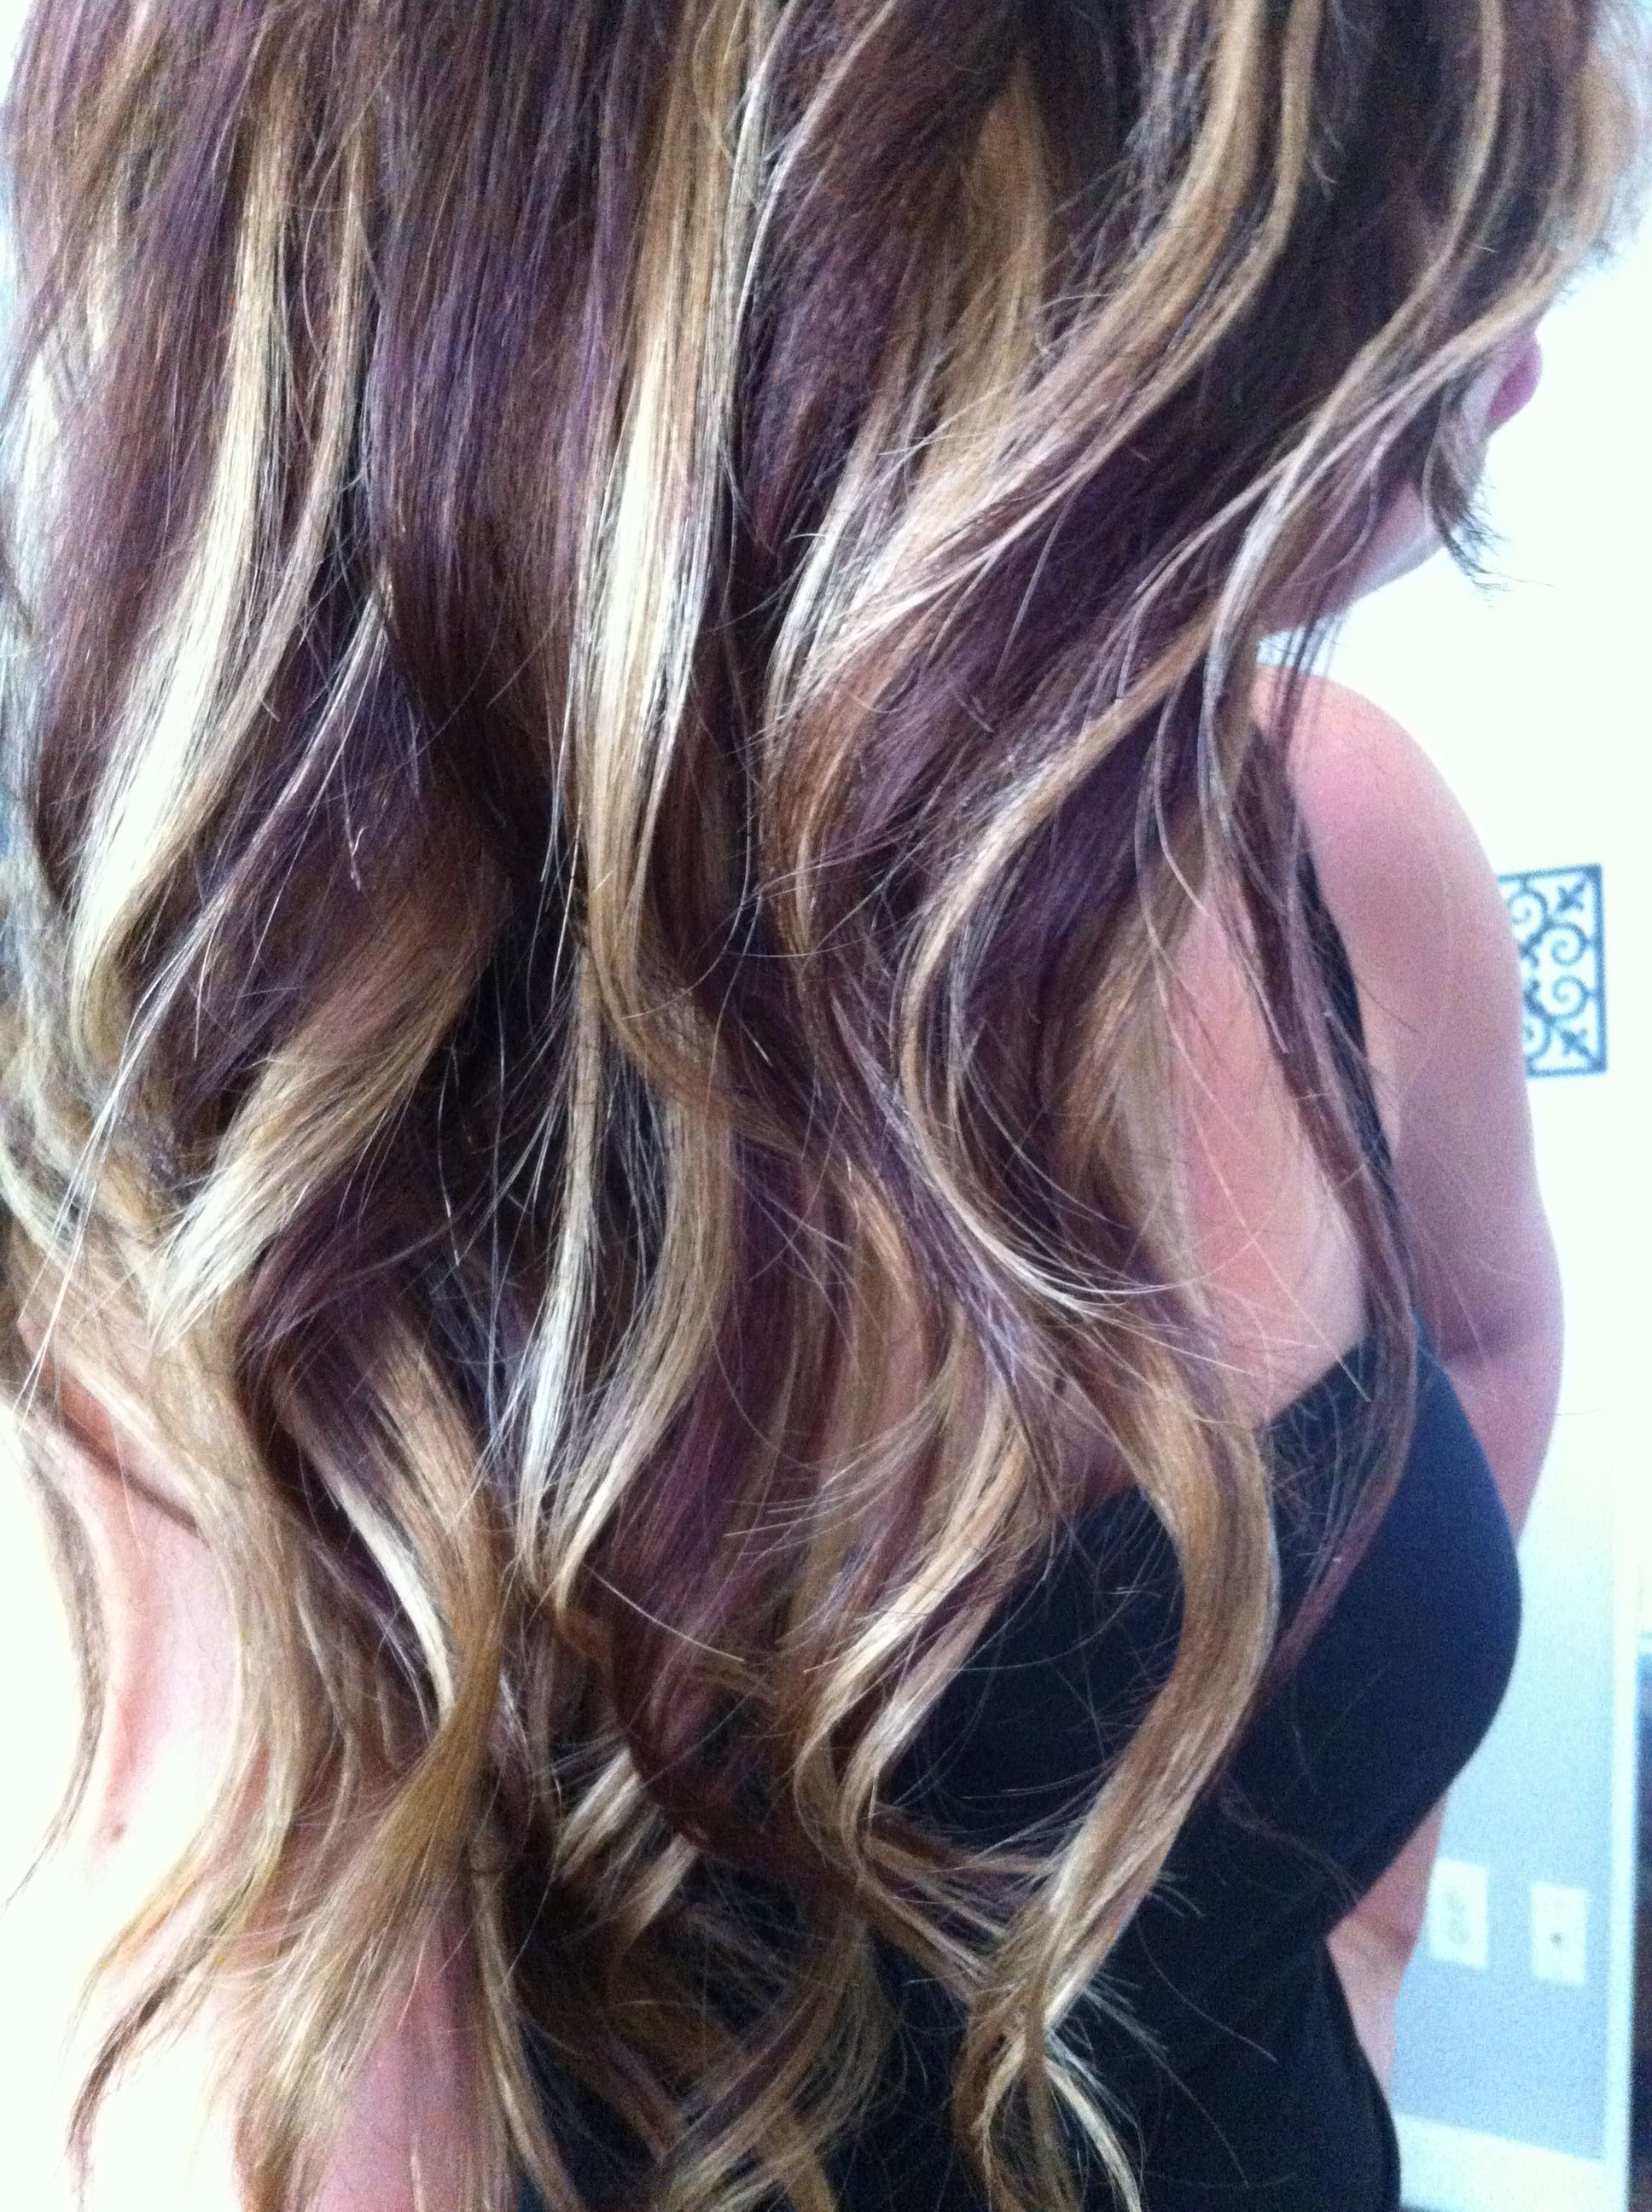 my fall time hair, golden brown with caramel highlights